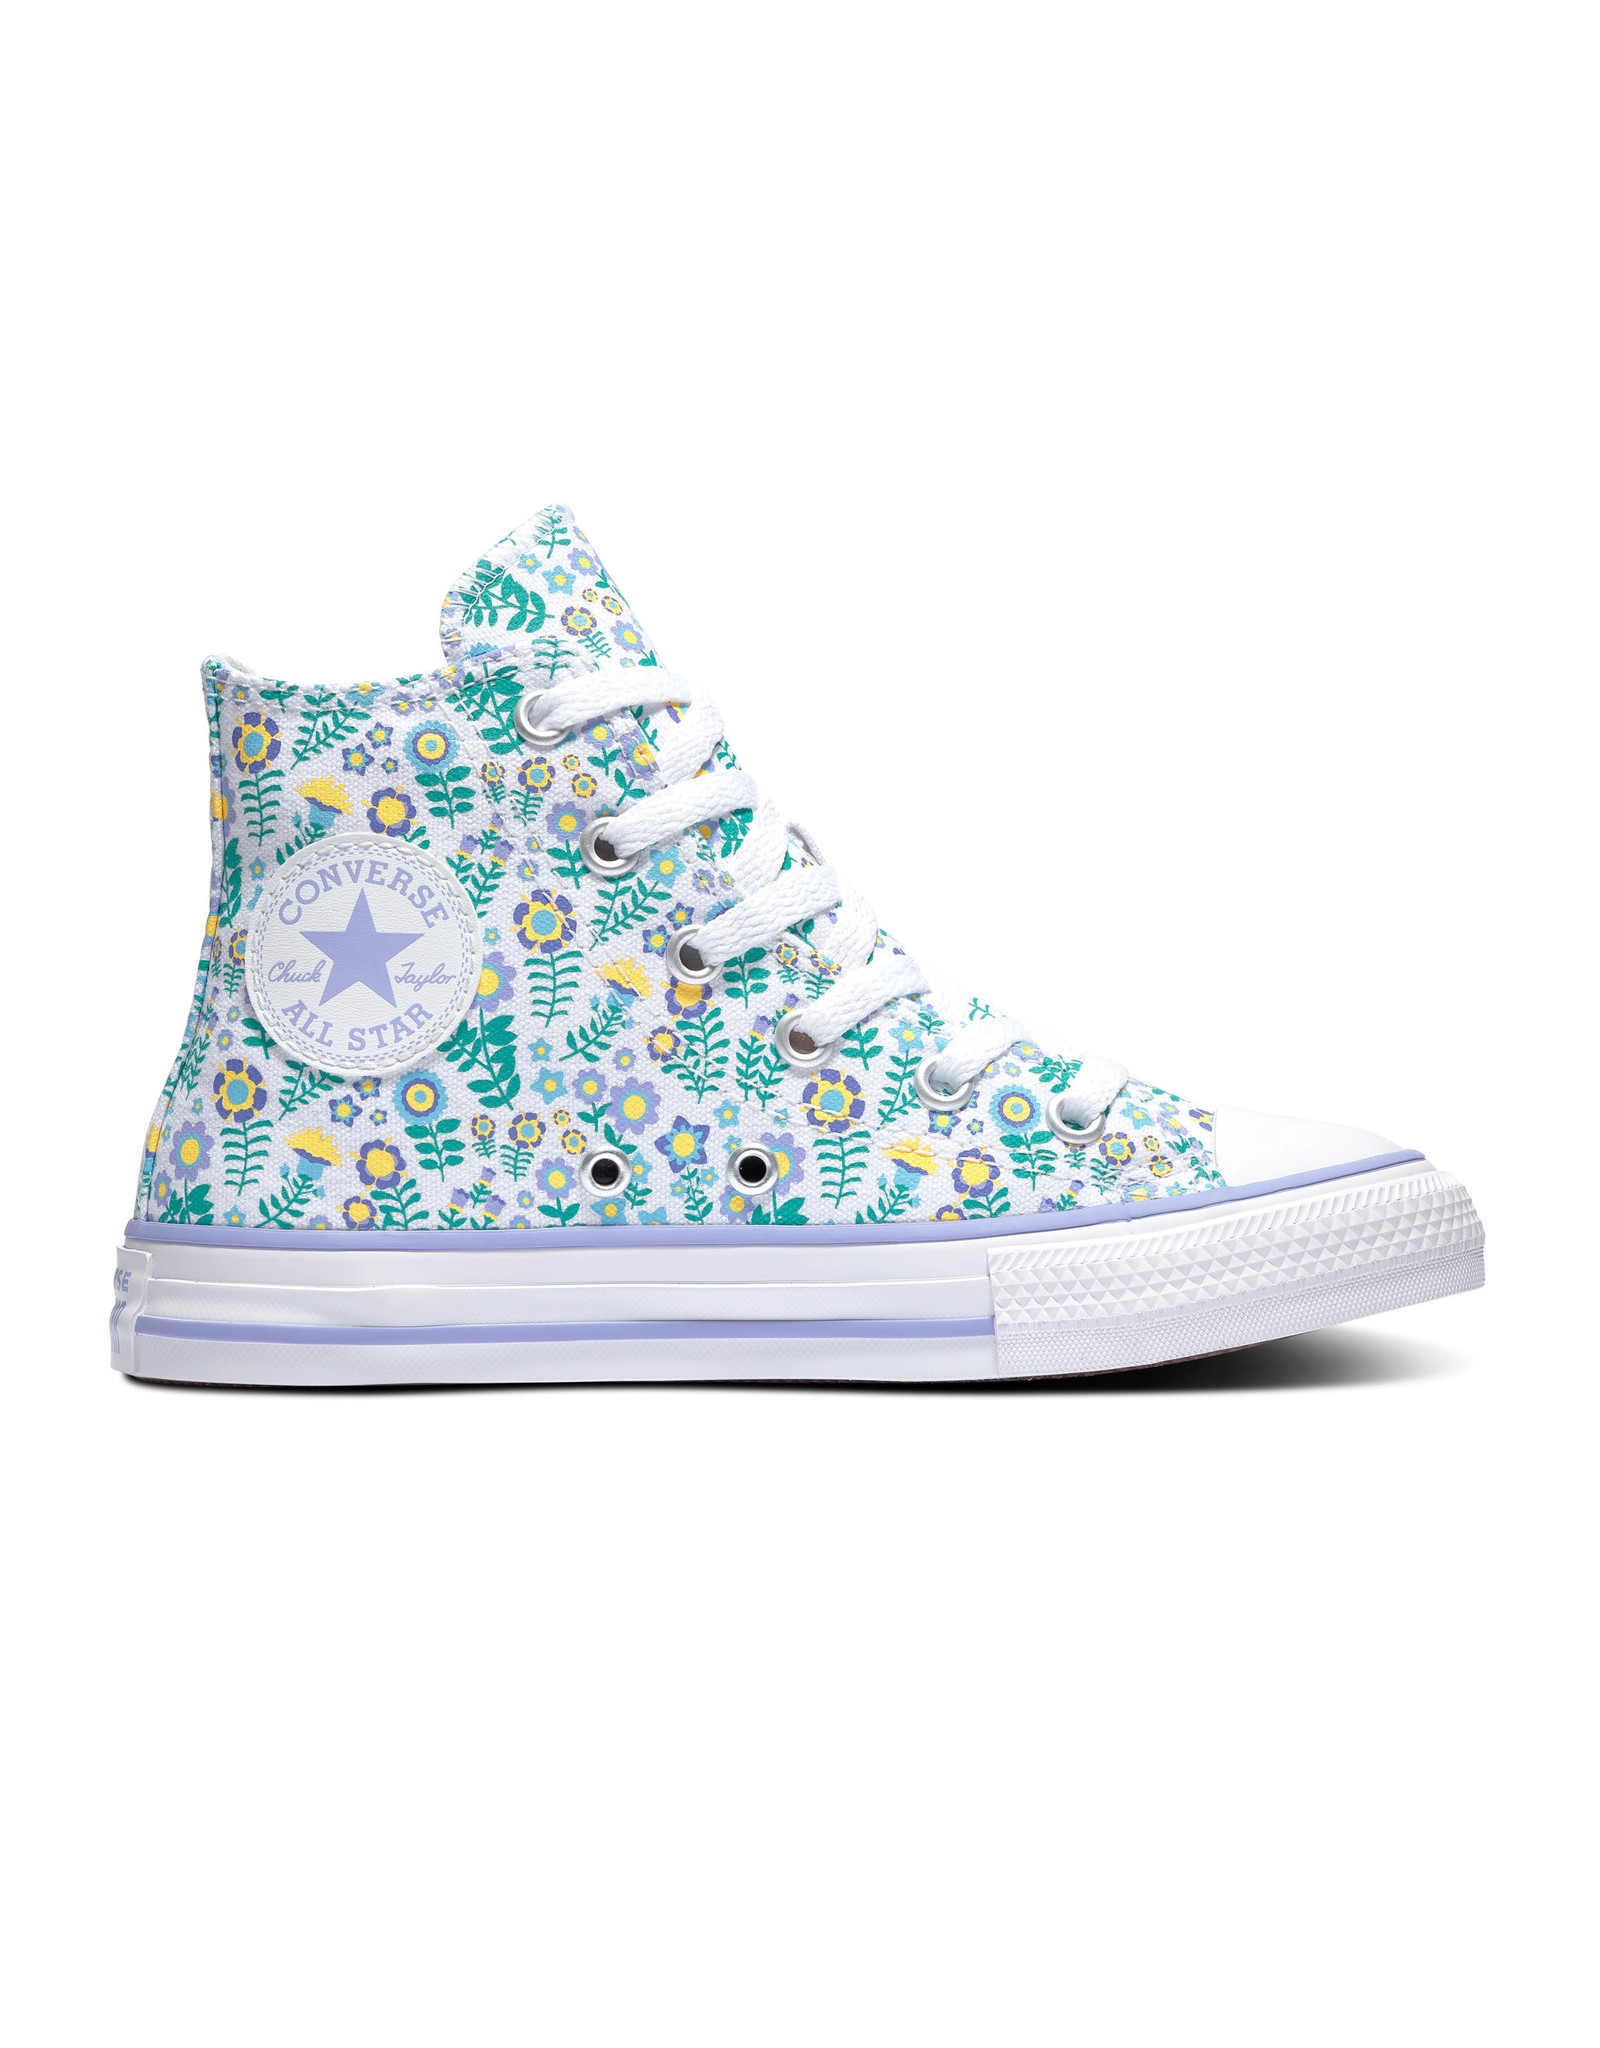 CONVERSE CTAS HI WHITE/TWILIGHT PULSE CBFLOW-670214C